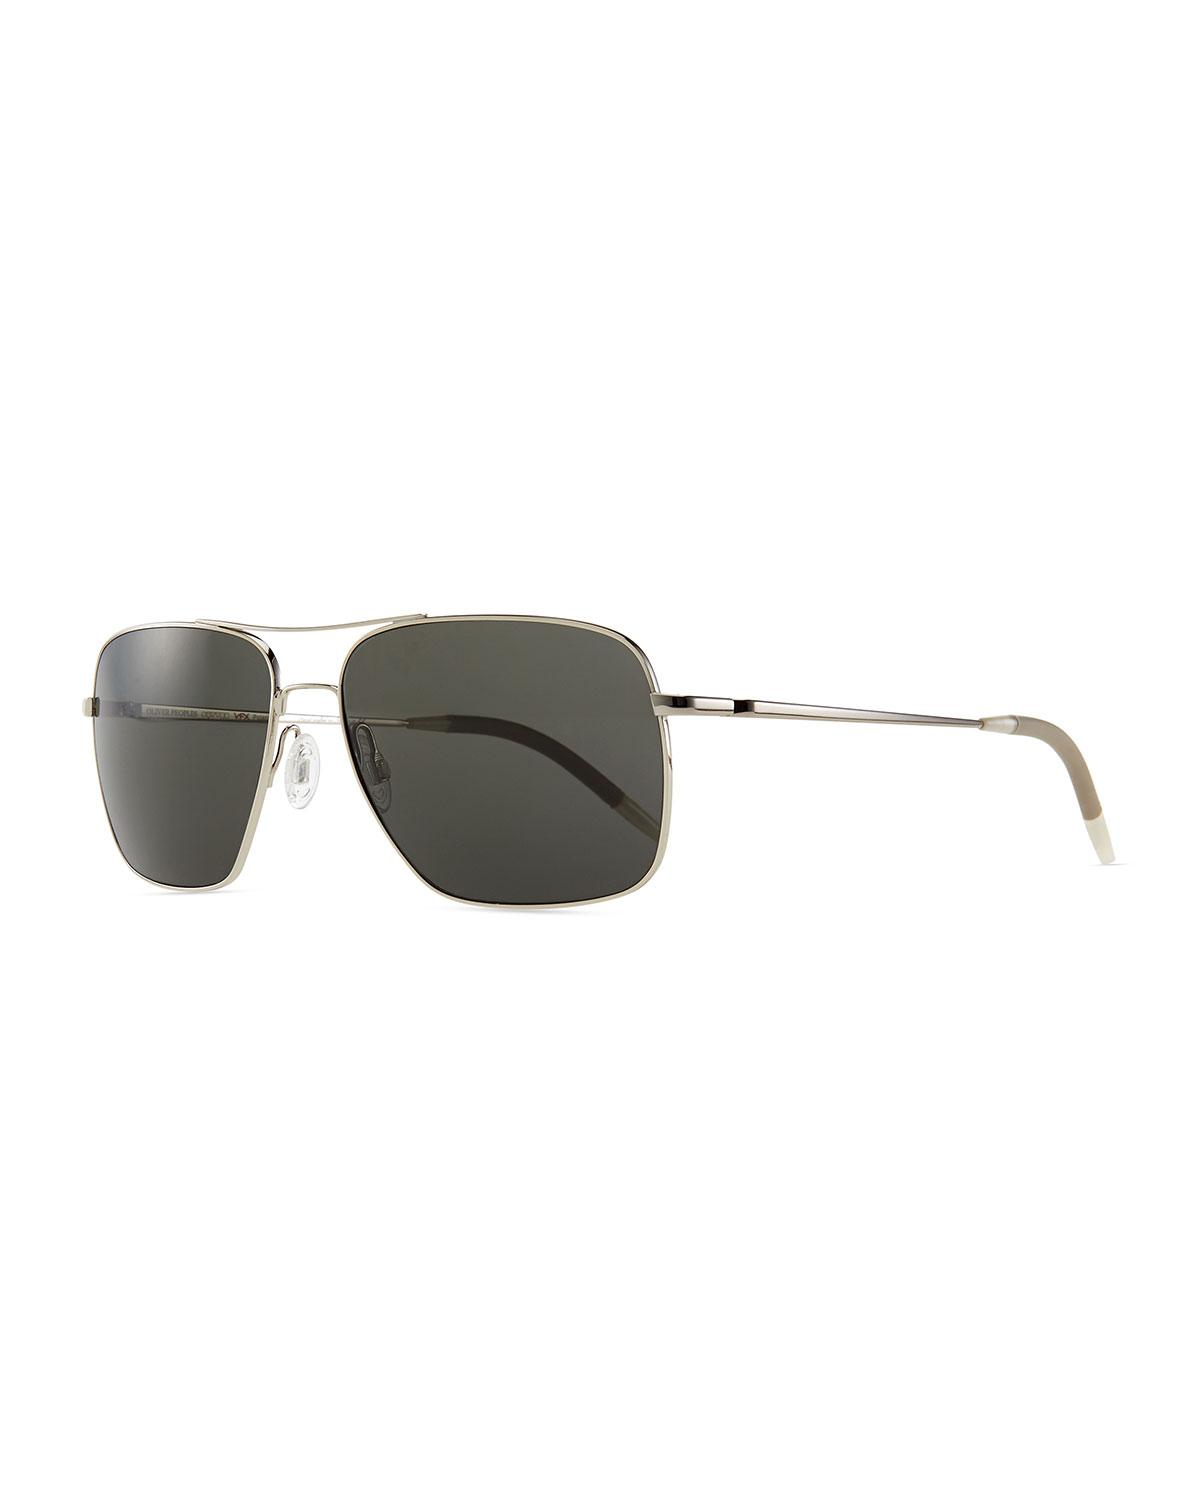 9a7a9567b17 Lyst - Oliver Peoples Clifton Polarized Sunglasses in Metallic for ...